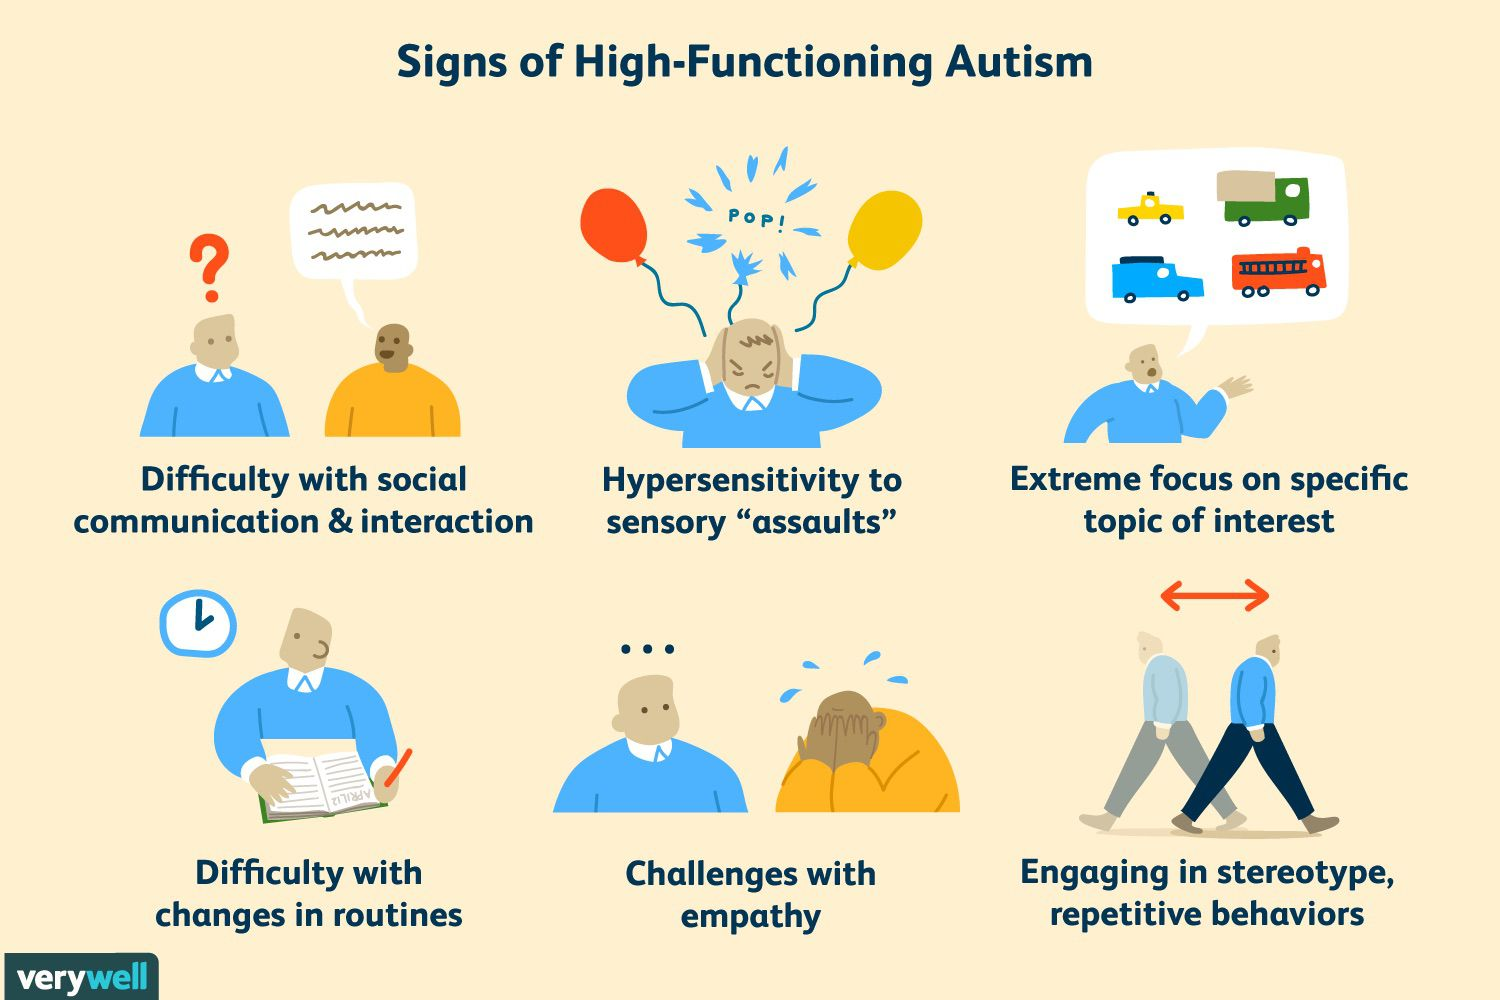 Adult aspergers syndrome symptoms